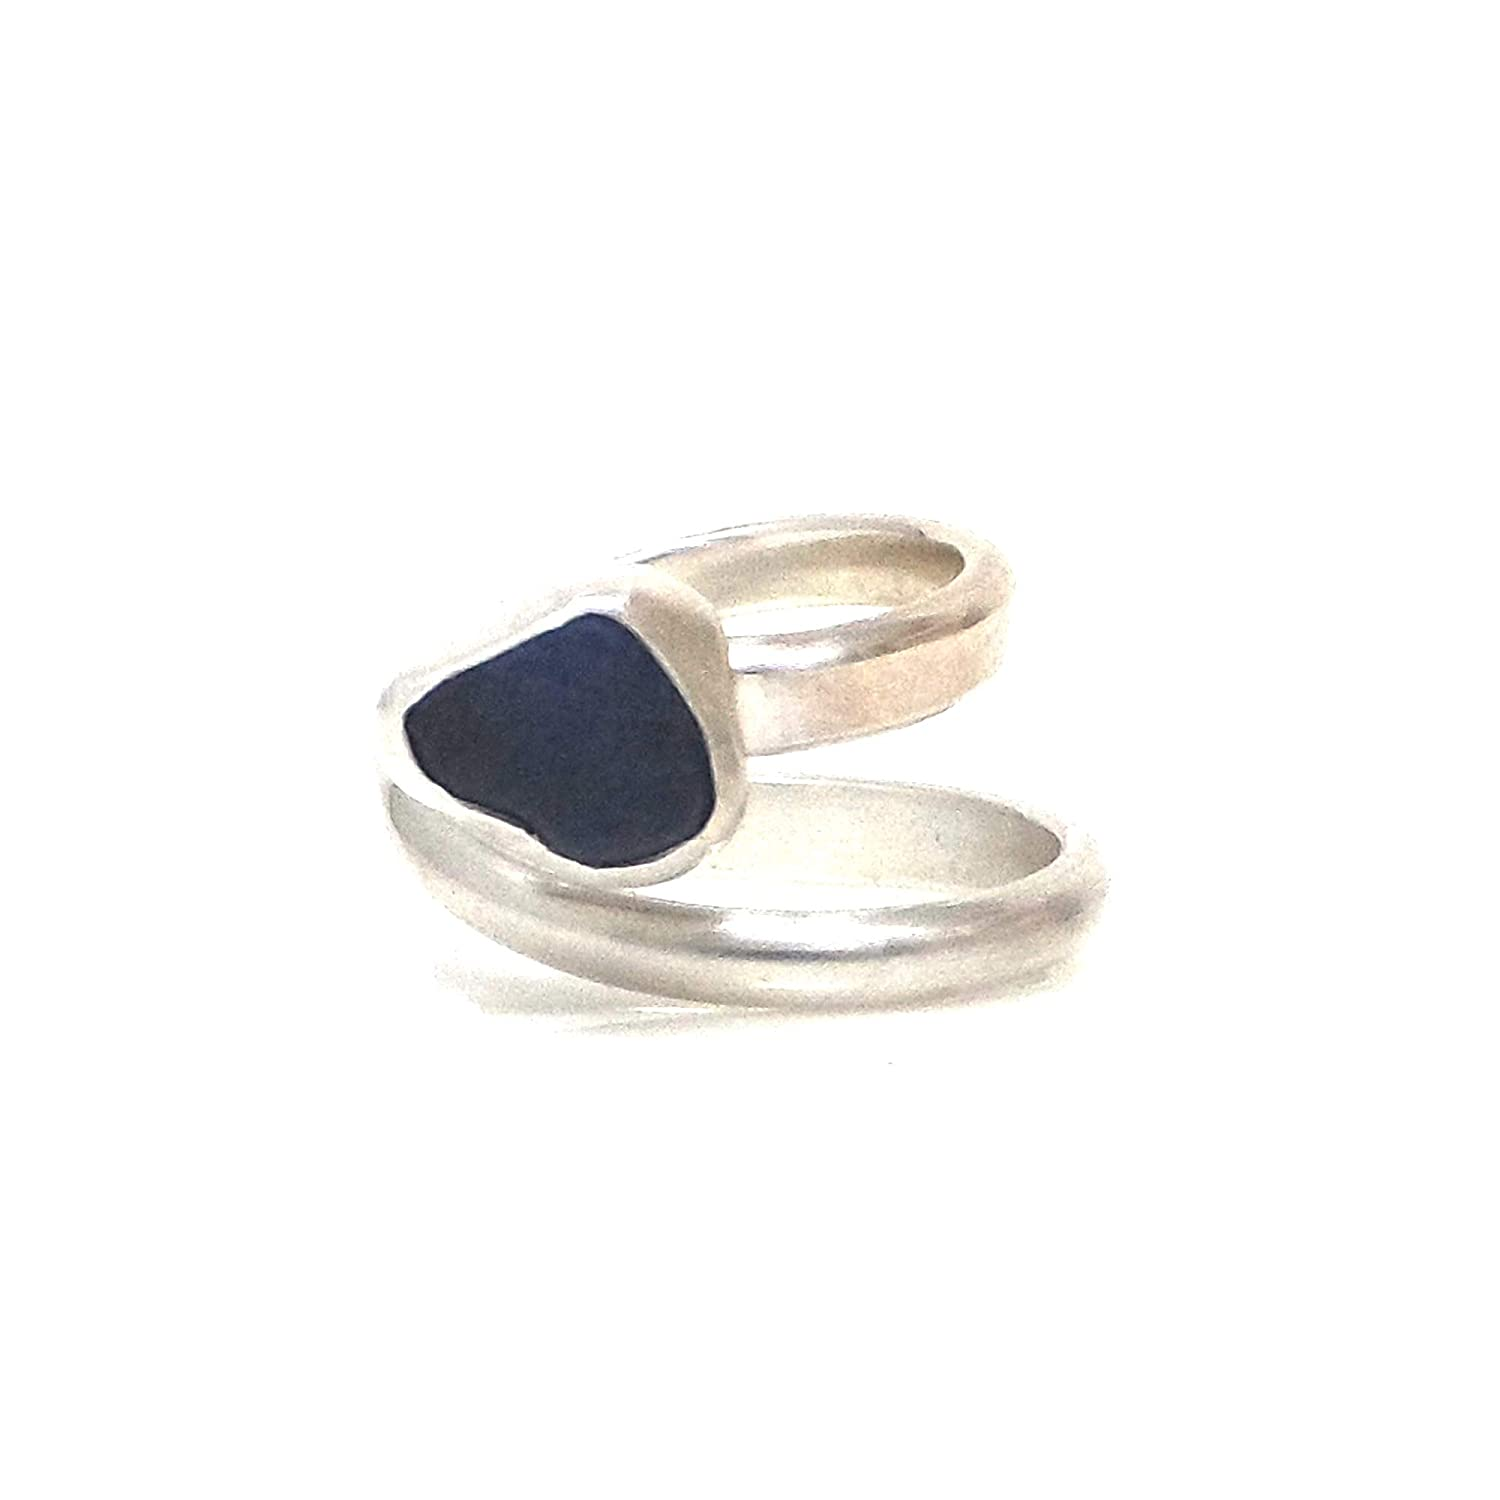 Gift Boxed Cornish Blue Sea Glass Ring Handmade in Cornwall Silver Bezel Adjustable Ring